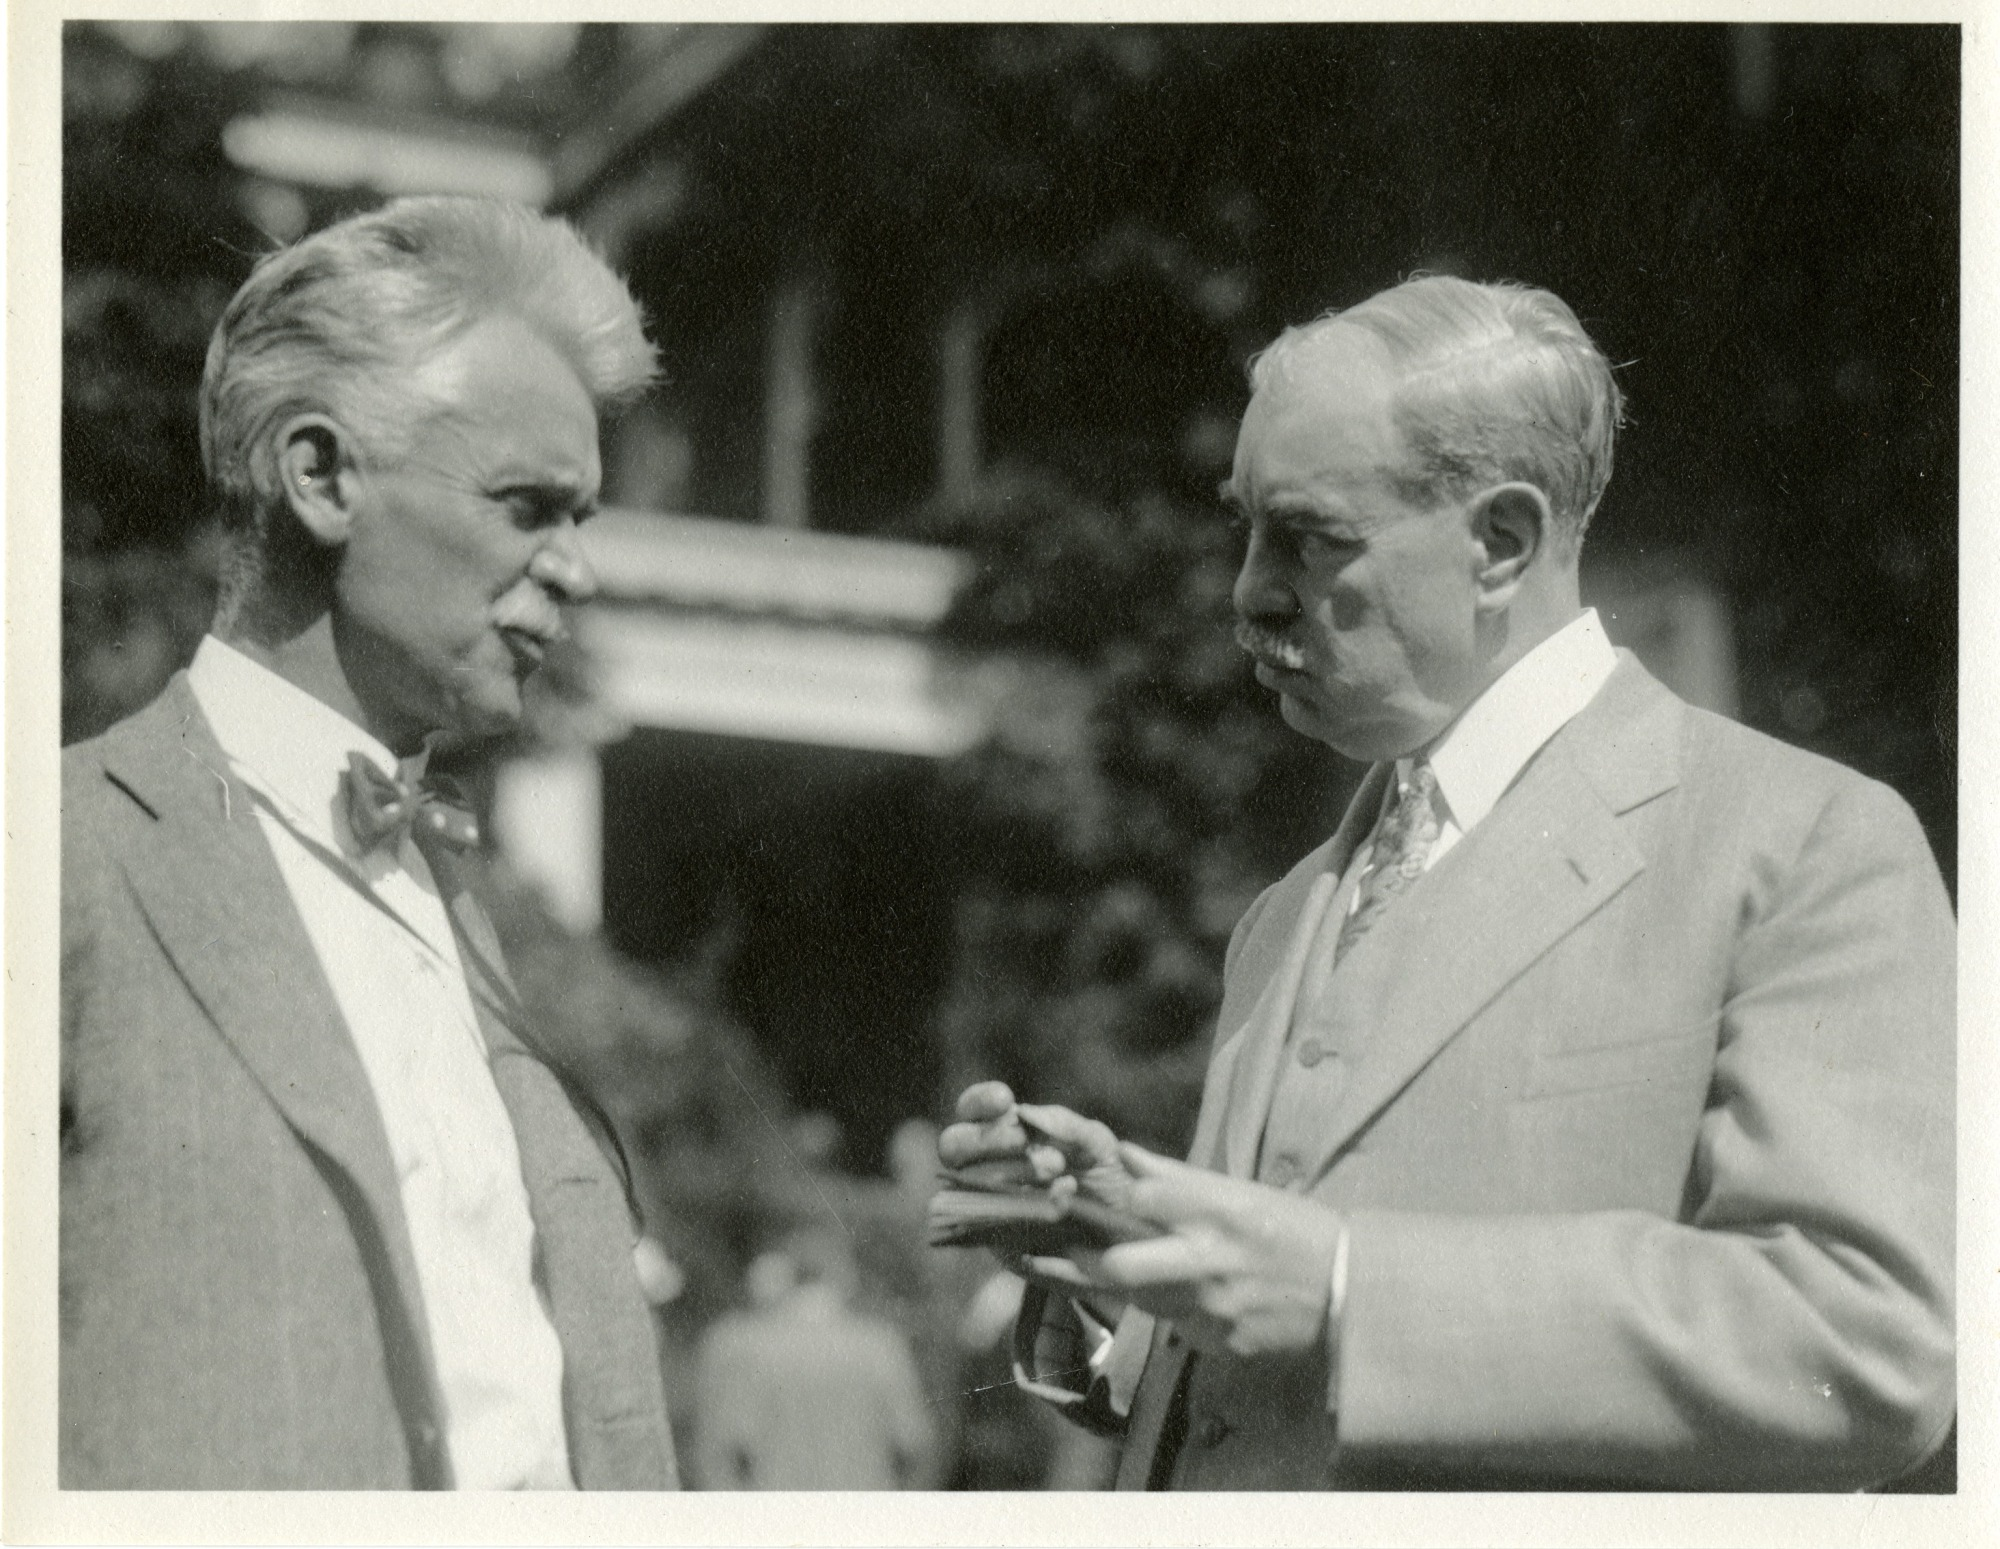 Hiram Percy Maxim (1869-1936) and Edwin Emery Slosson (1865-1929)